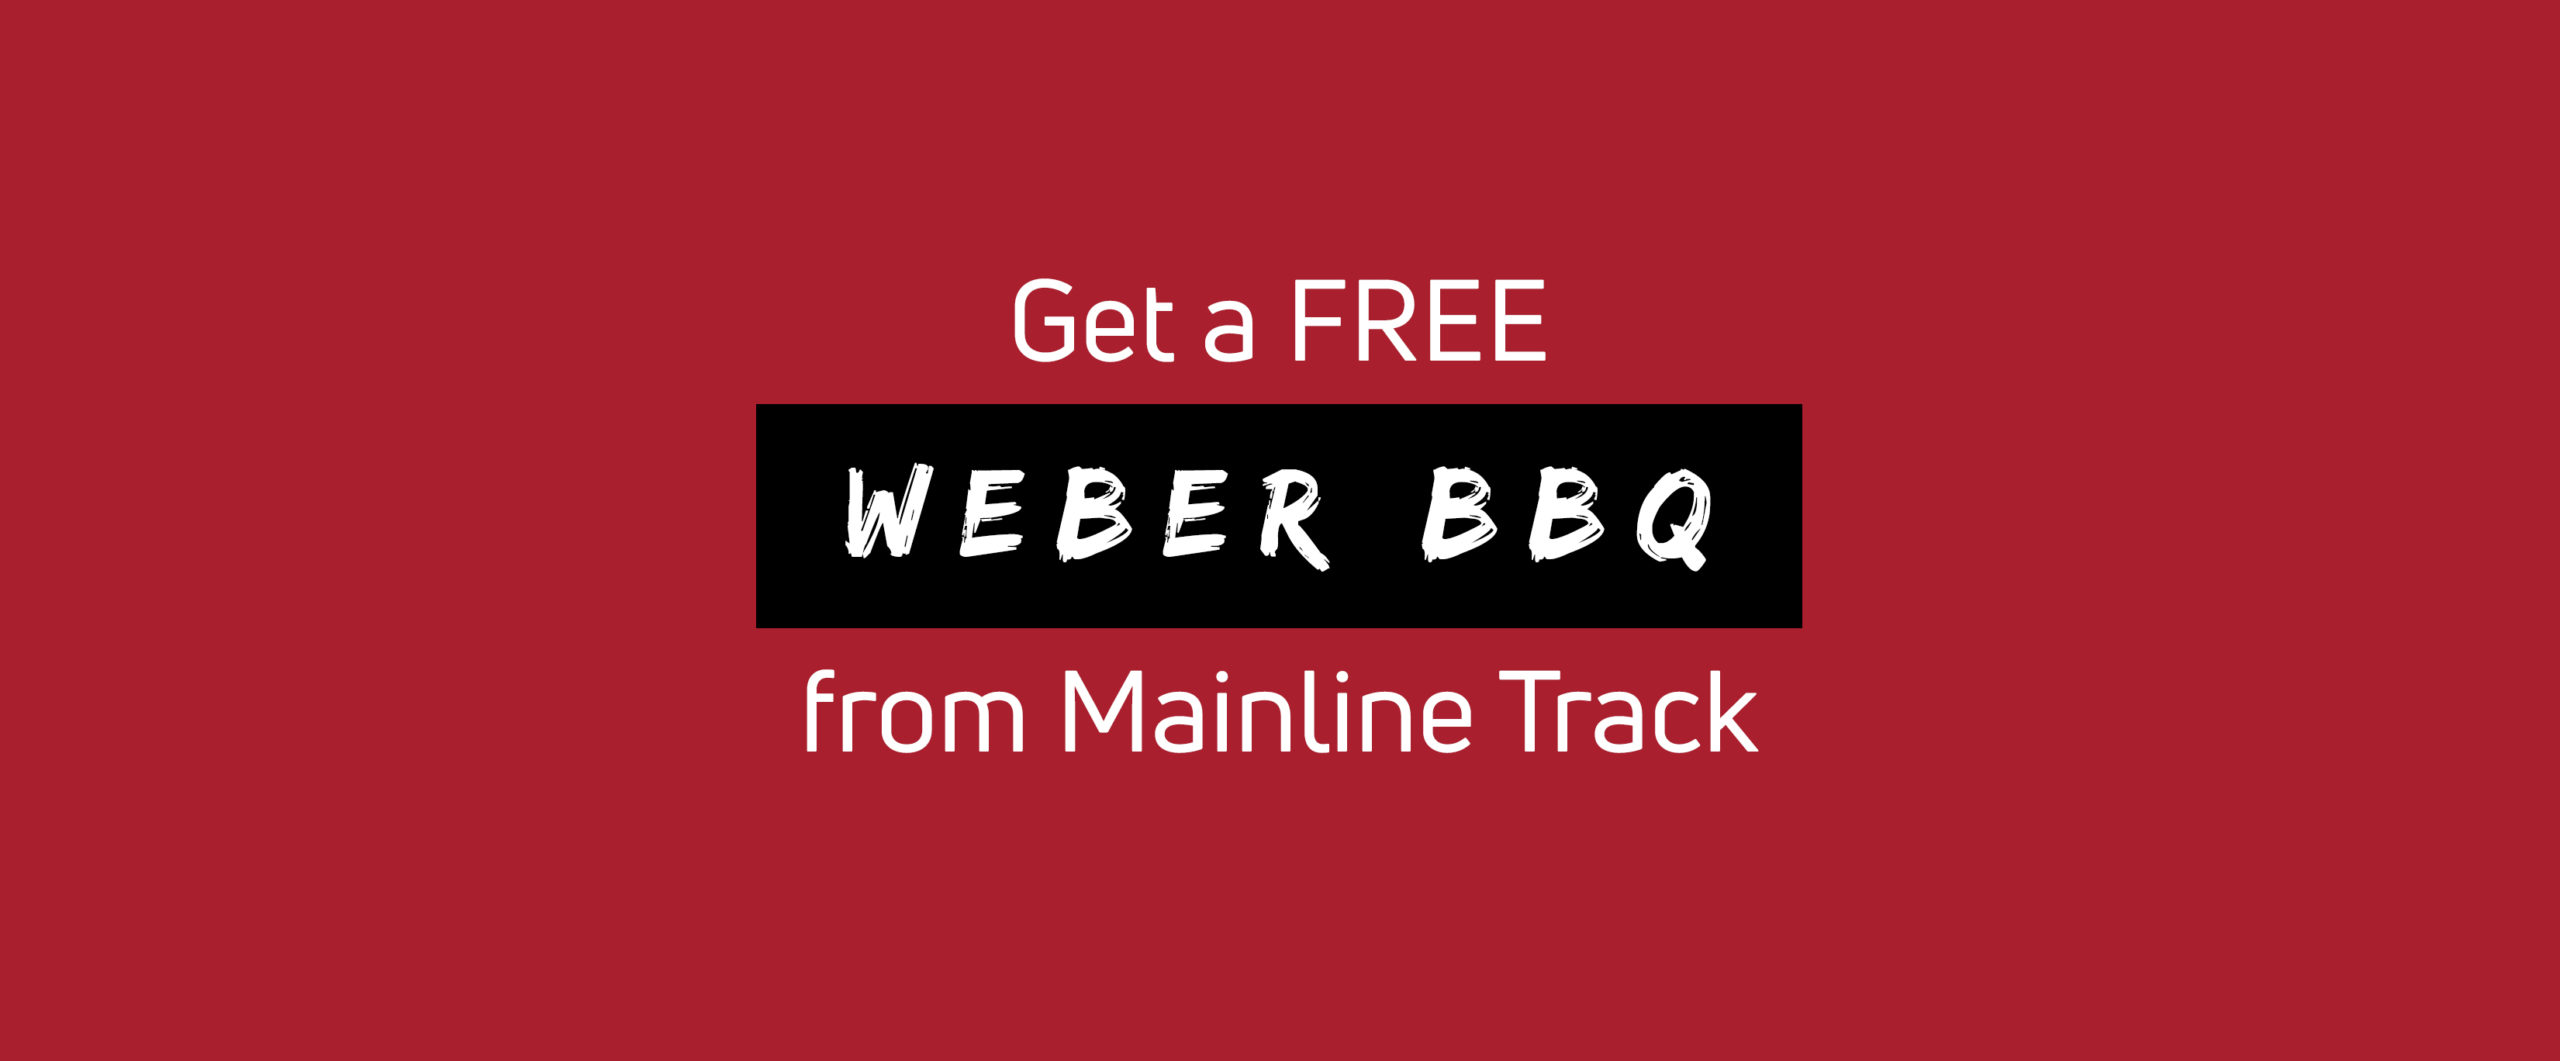 Get a FREE Weber BBQ from Mainline Track!